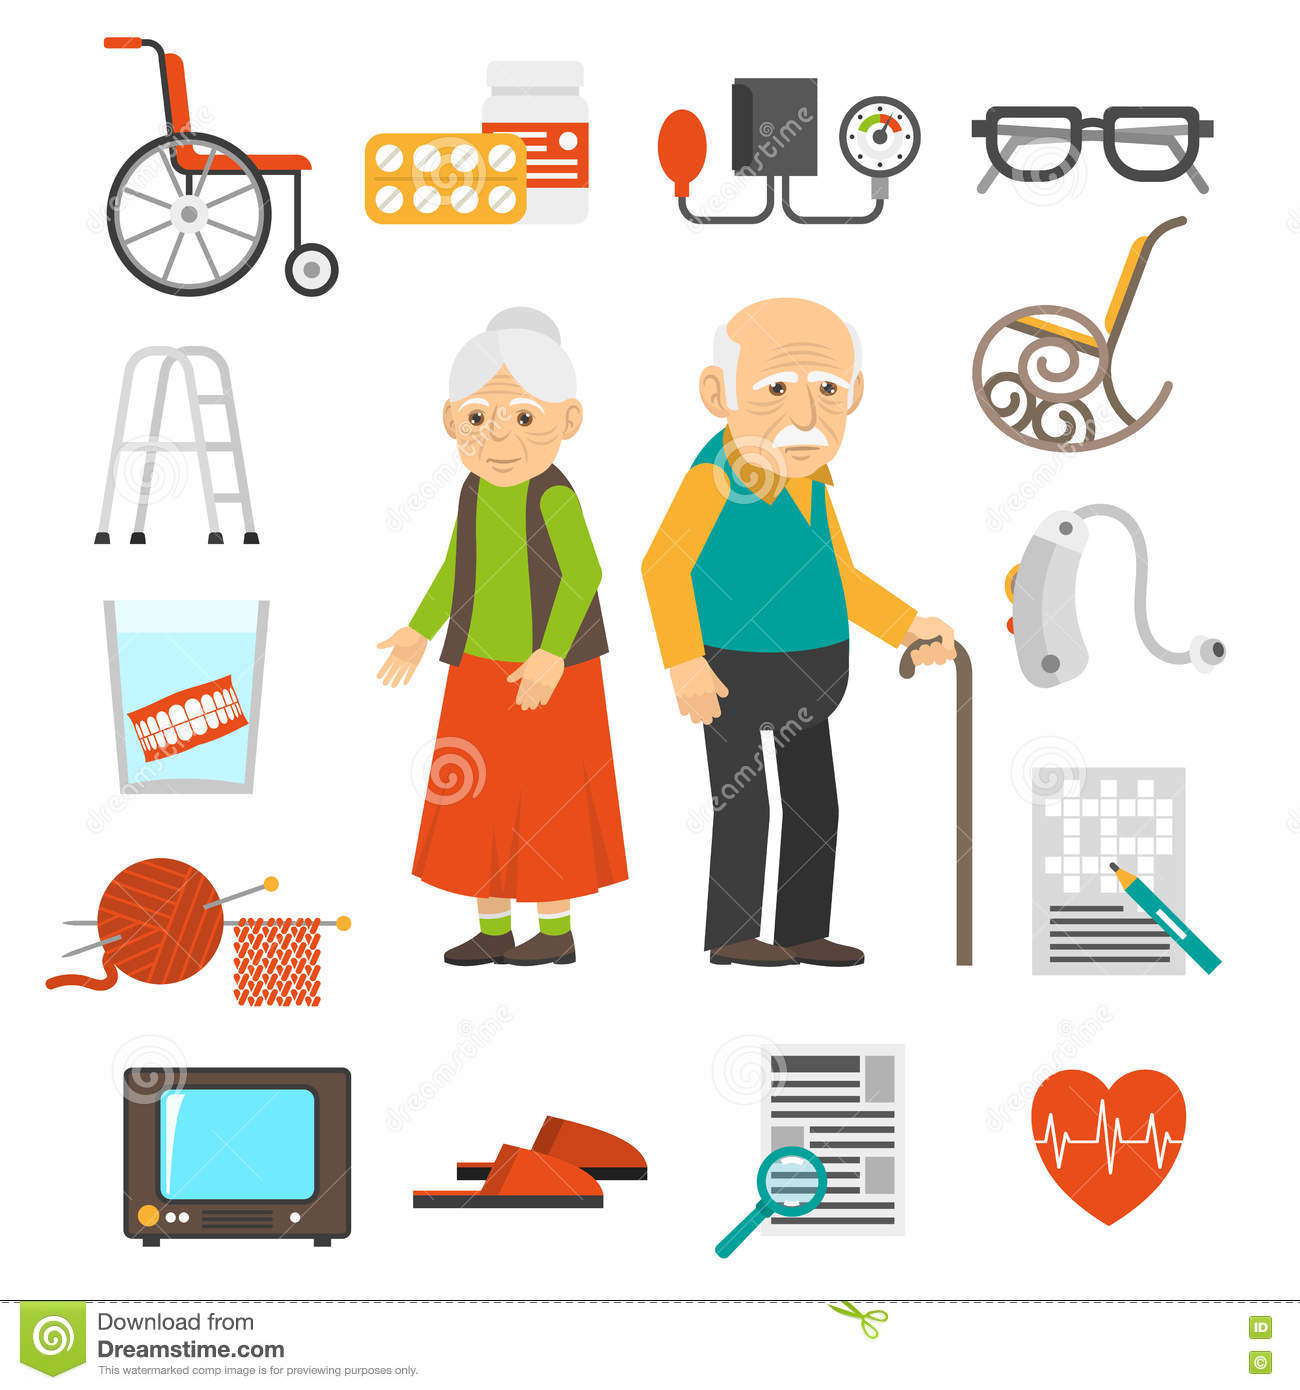 wheel chair prices table chairs 2 aging people accessories flat icons set stock vector - image: 71195945